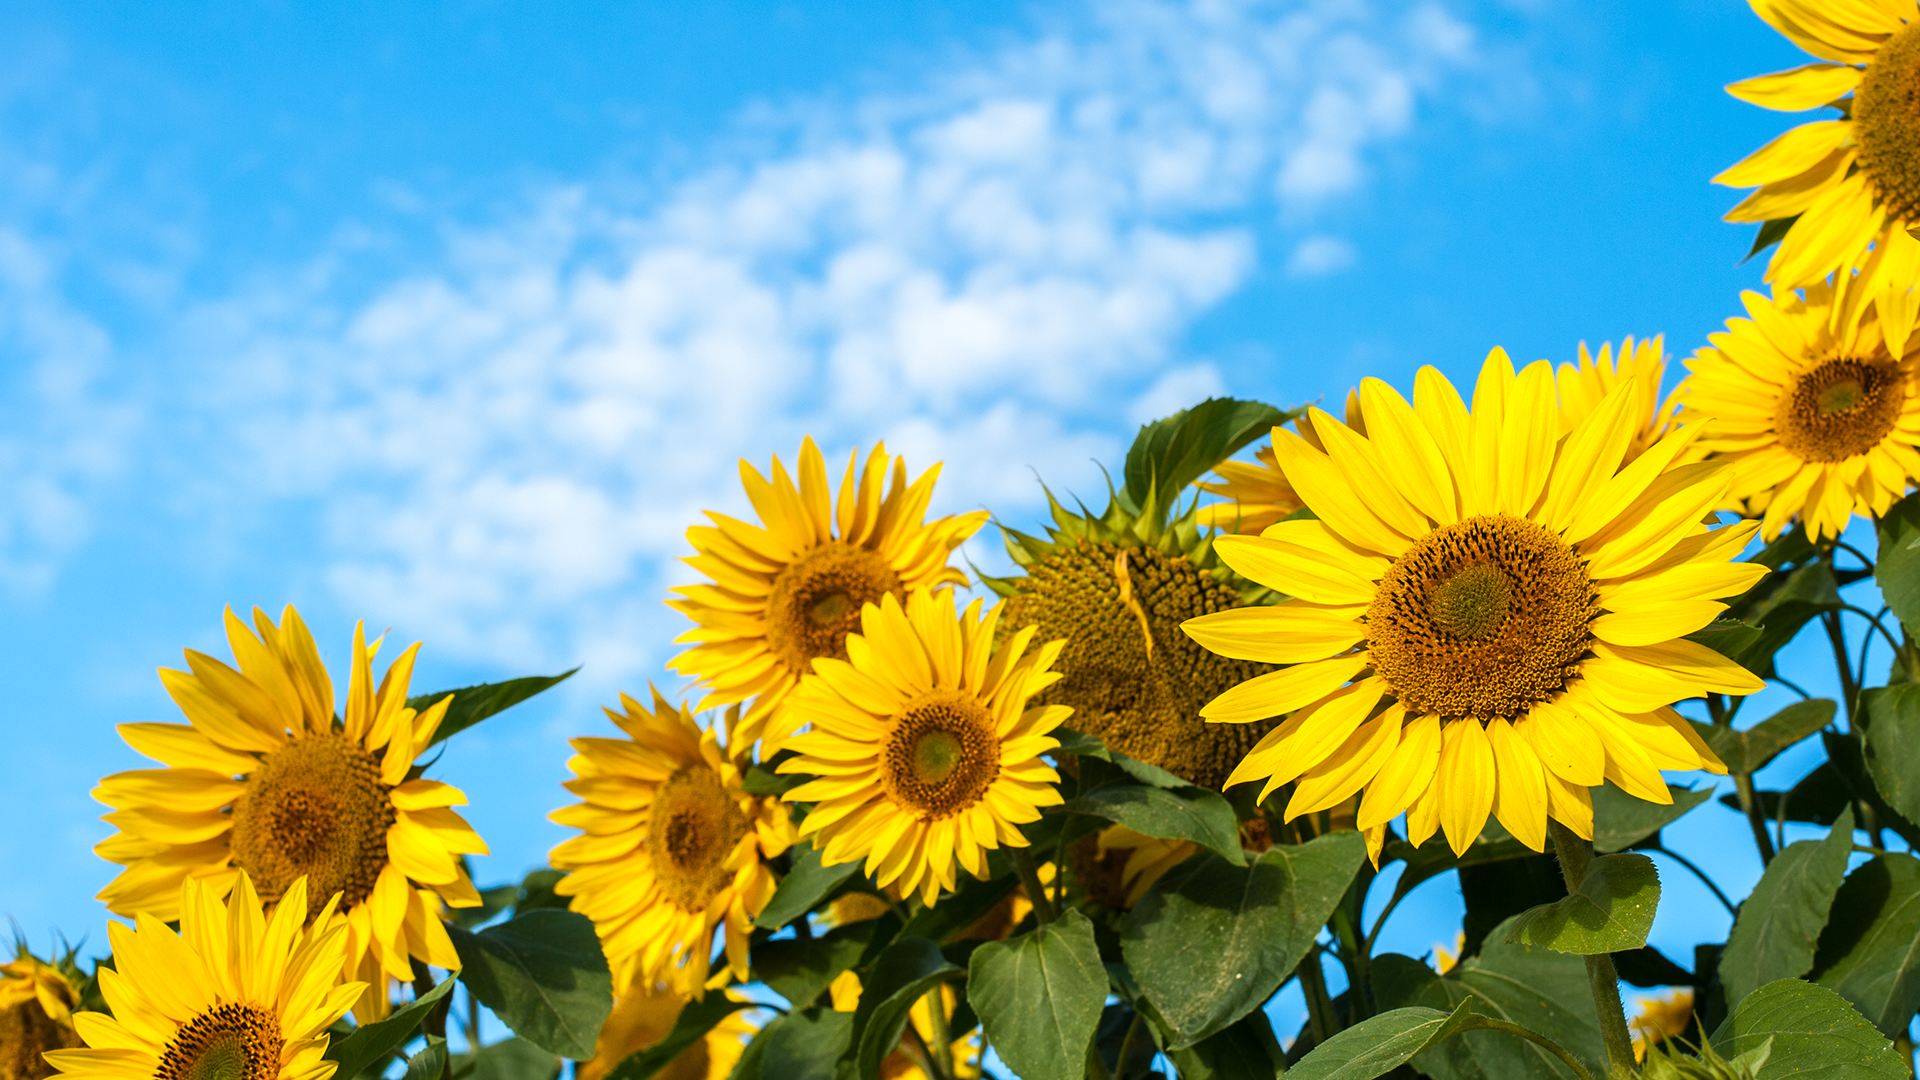 Sunflowers Against A Blue Sky Windows 10 Spotlight Images